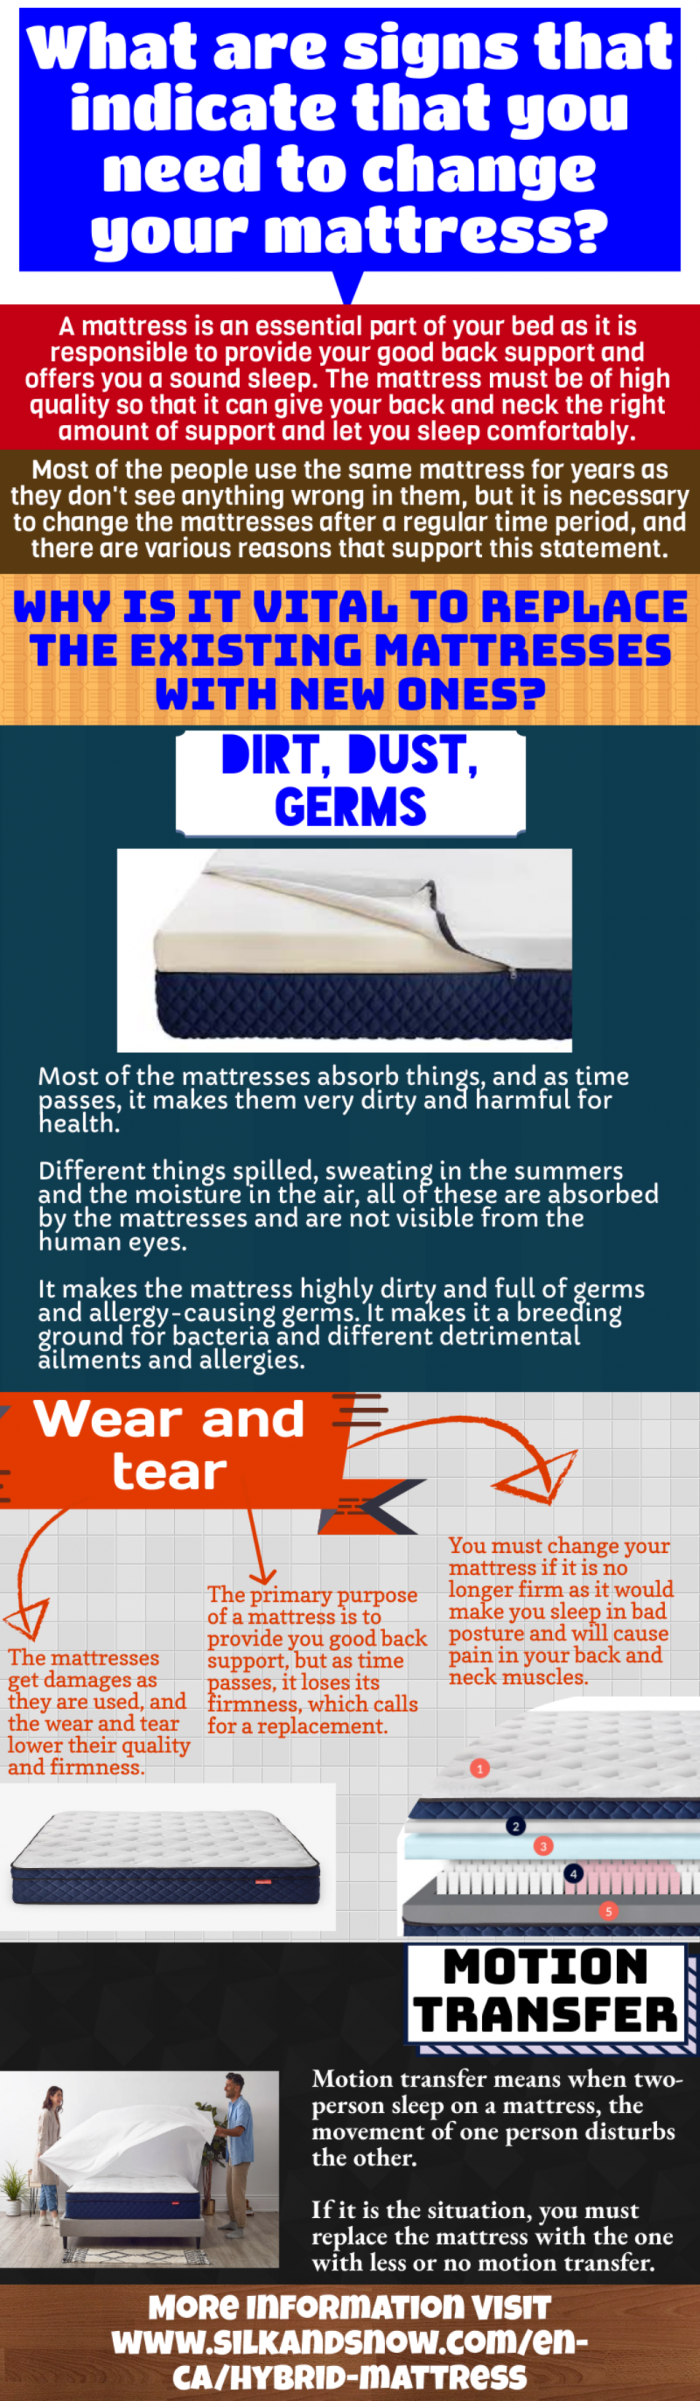 Mattresses-Durability and level of comfort